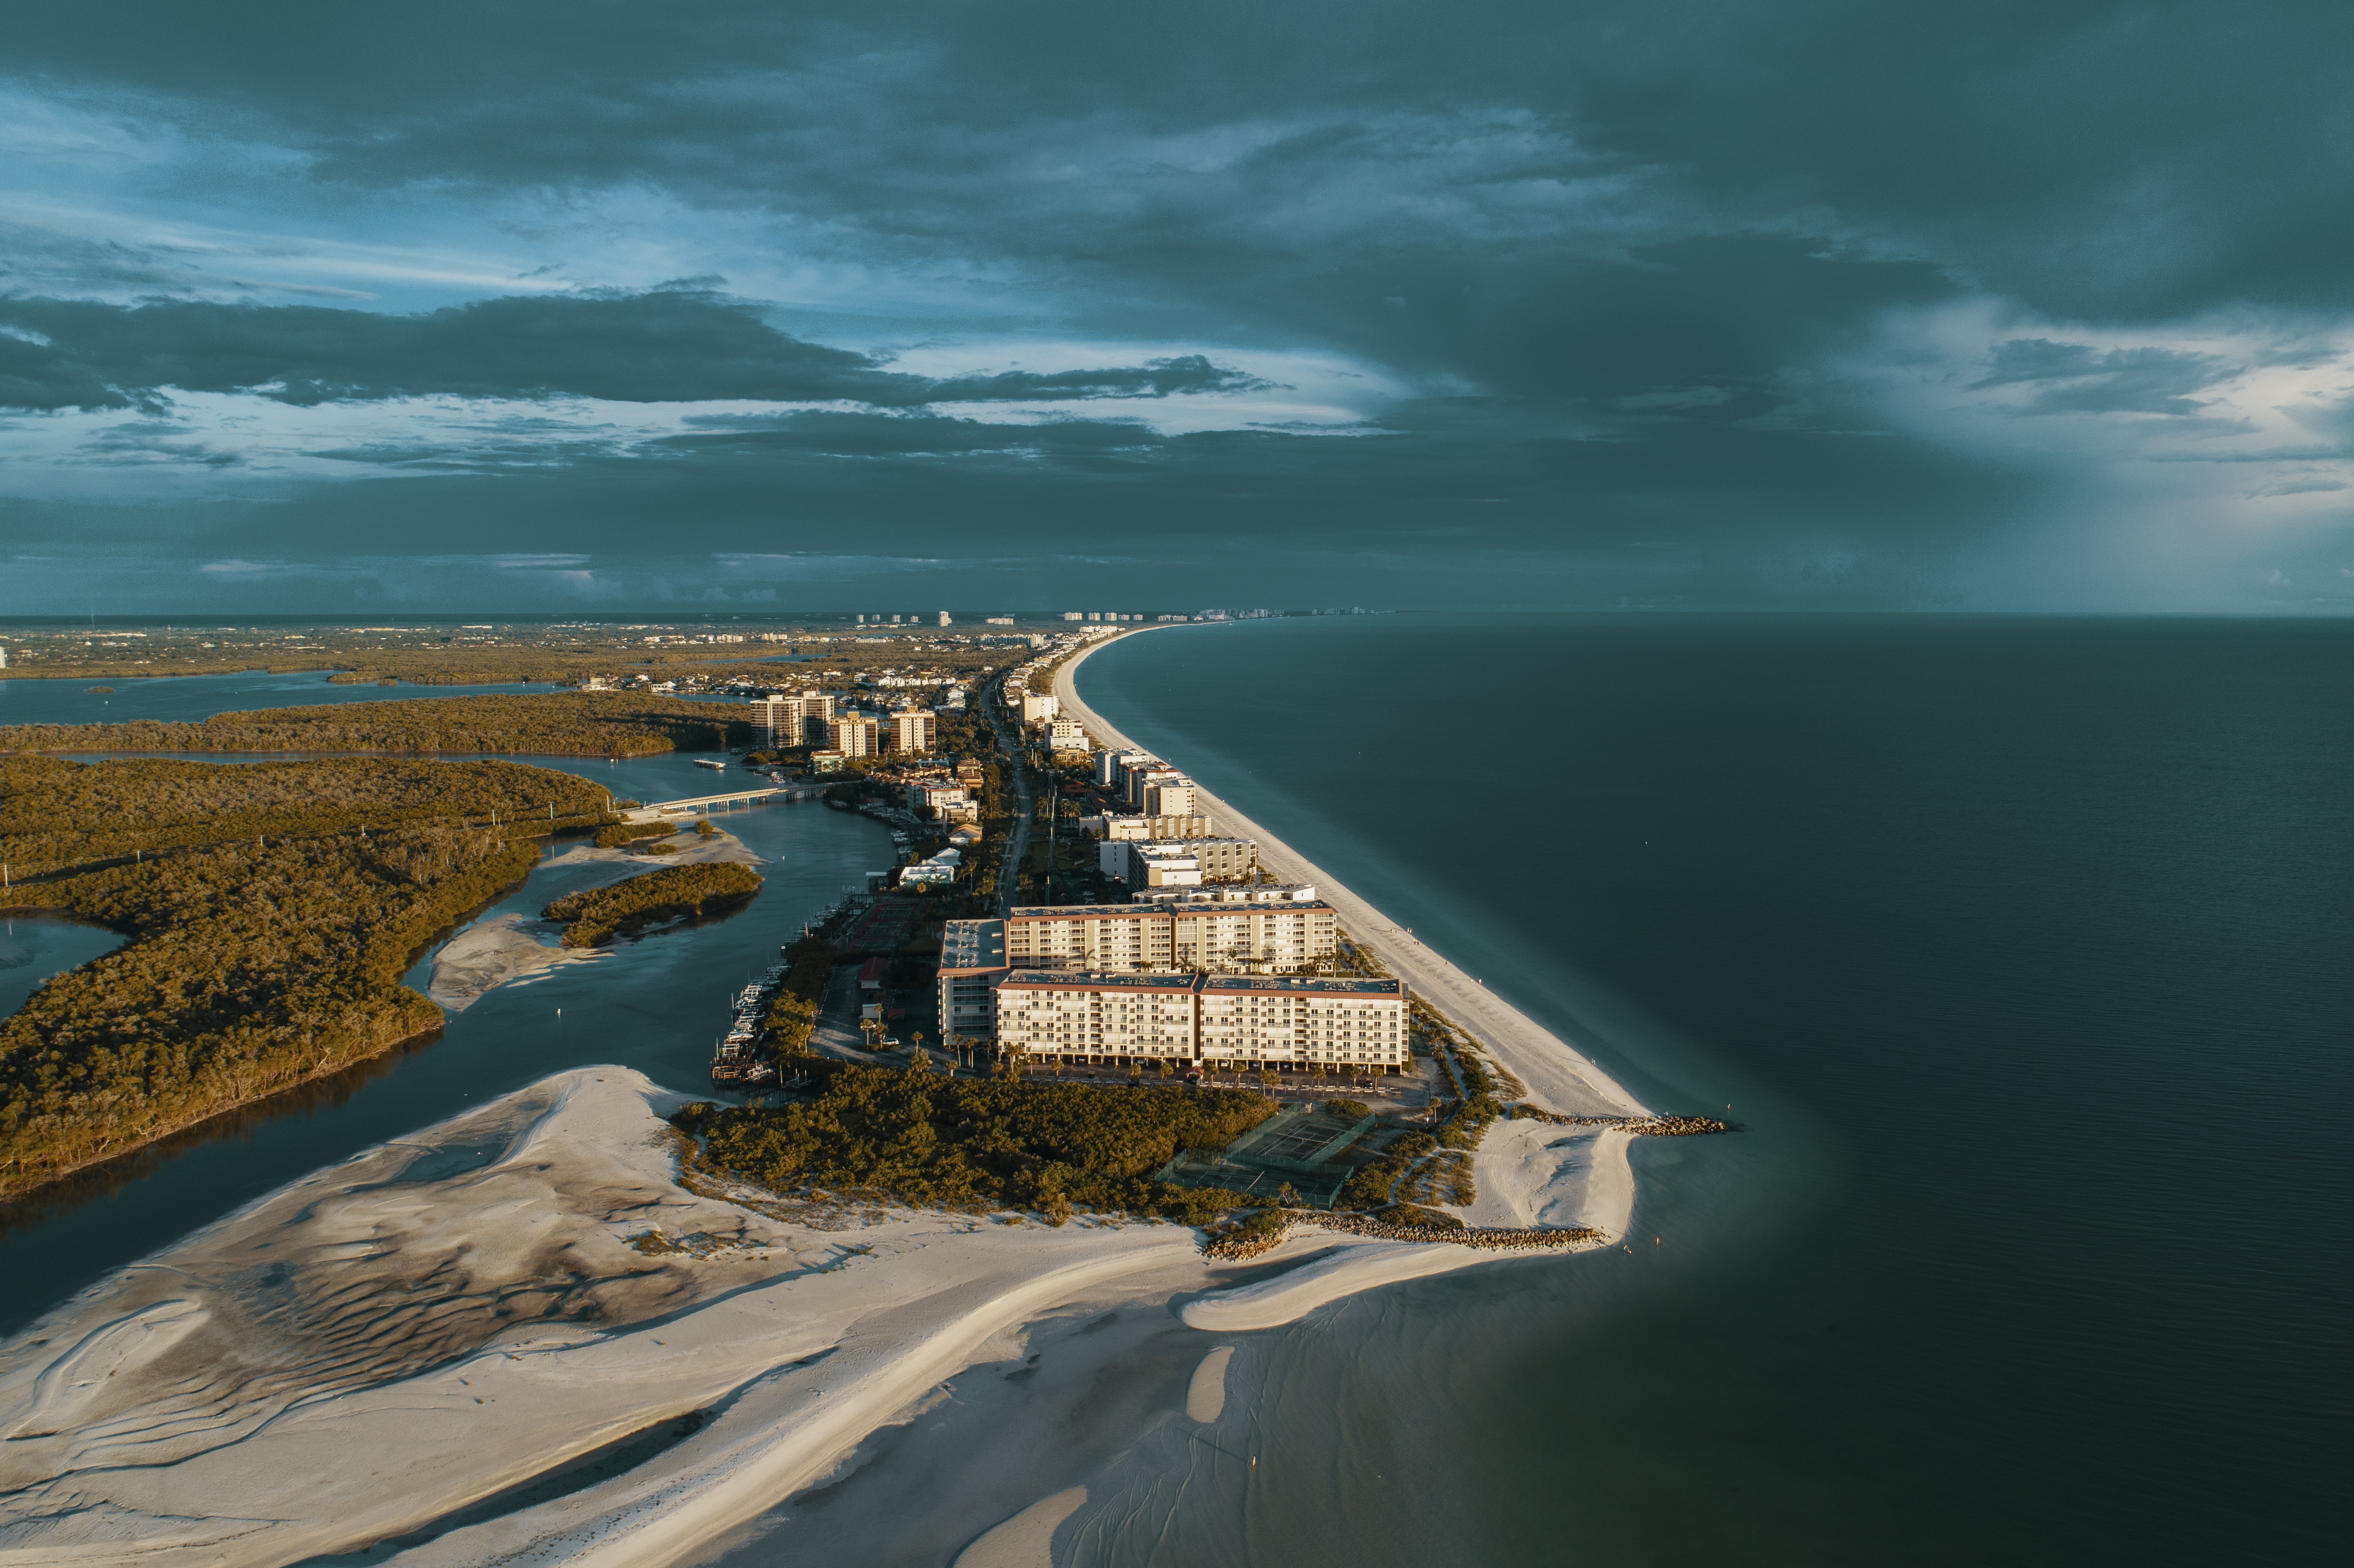 aerial photography of white house beside ocean under gray clouds at daytime